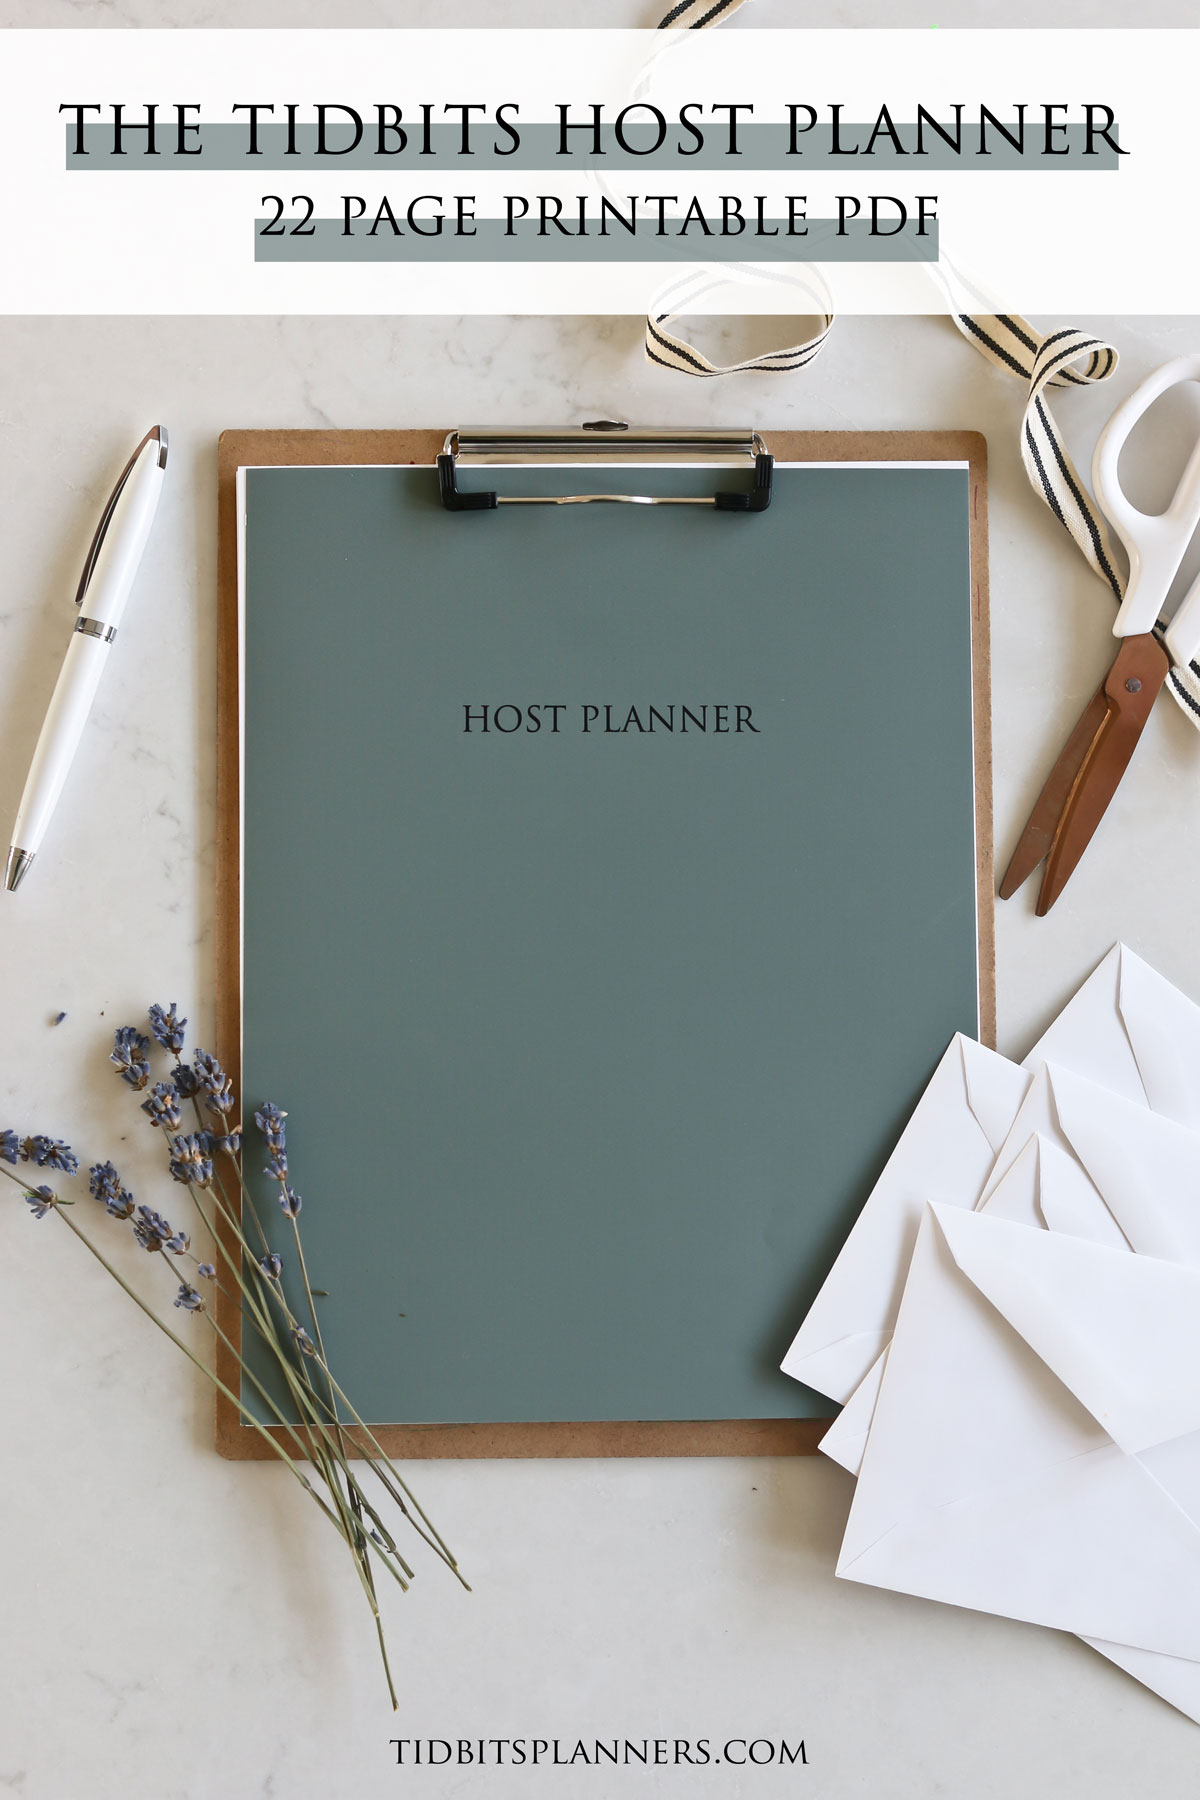 pages of the Host Planner attached to a clipboard